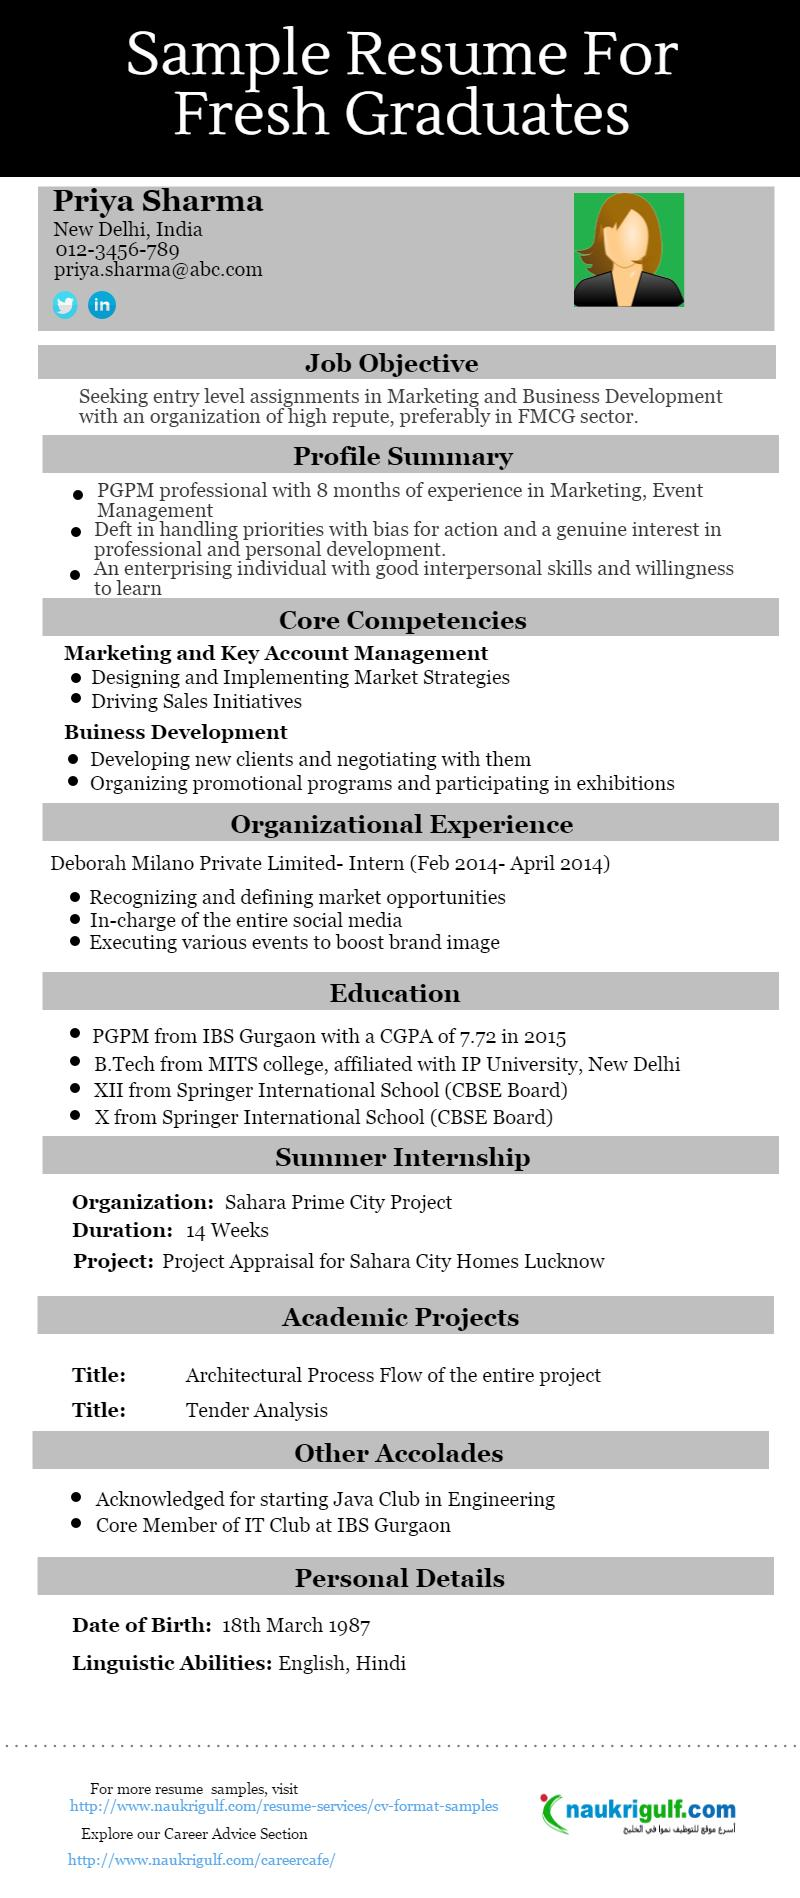 to write resume for fresher naukrigulf format sample fresh graduates hvac technician Resume Gulf Resume Format Sample